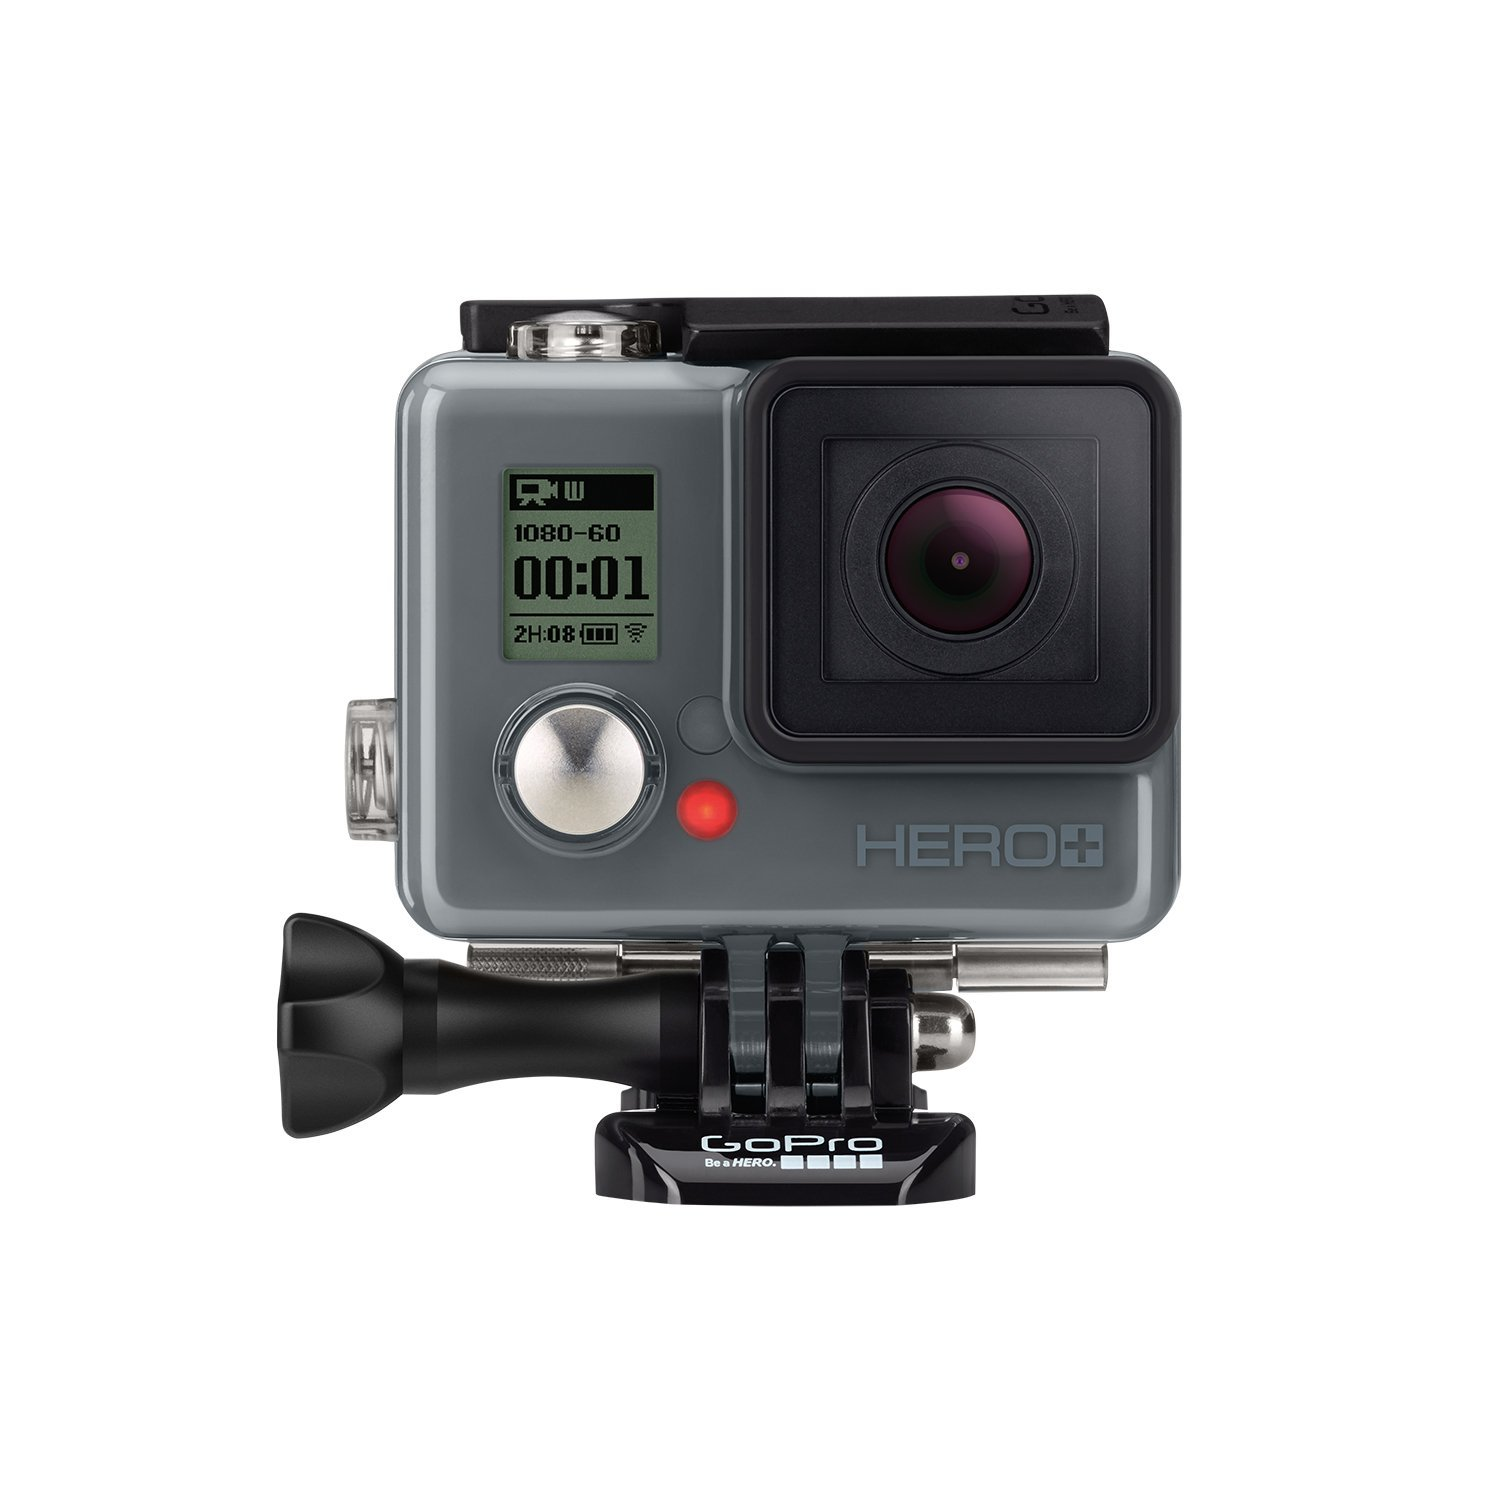 GoPro HERO+ Action Camcorder